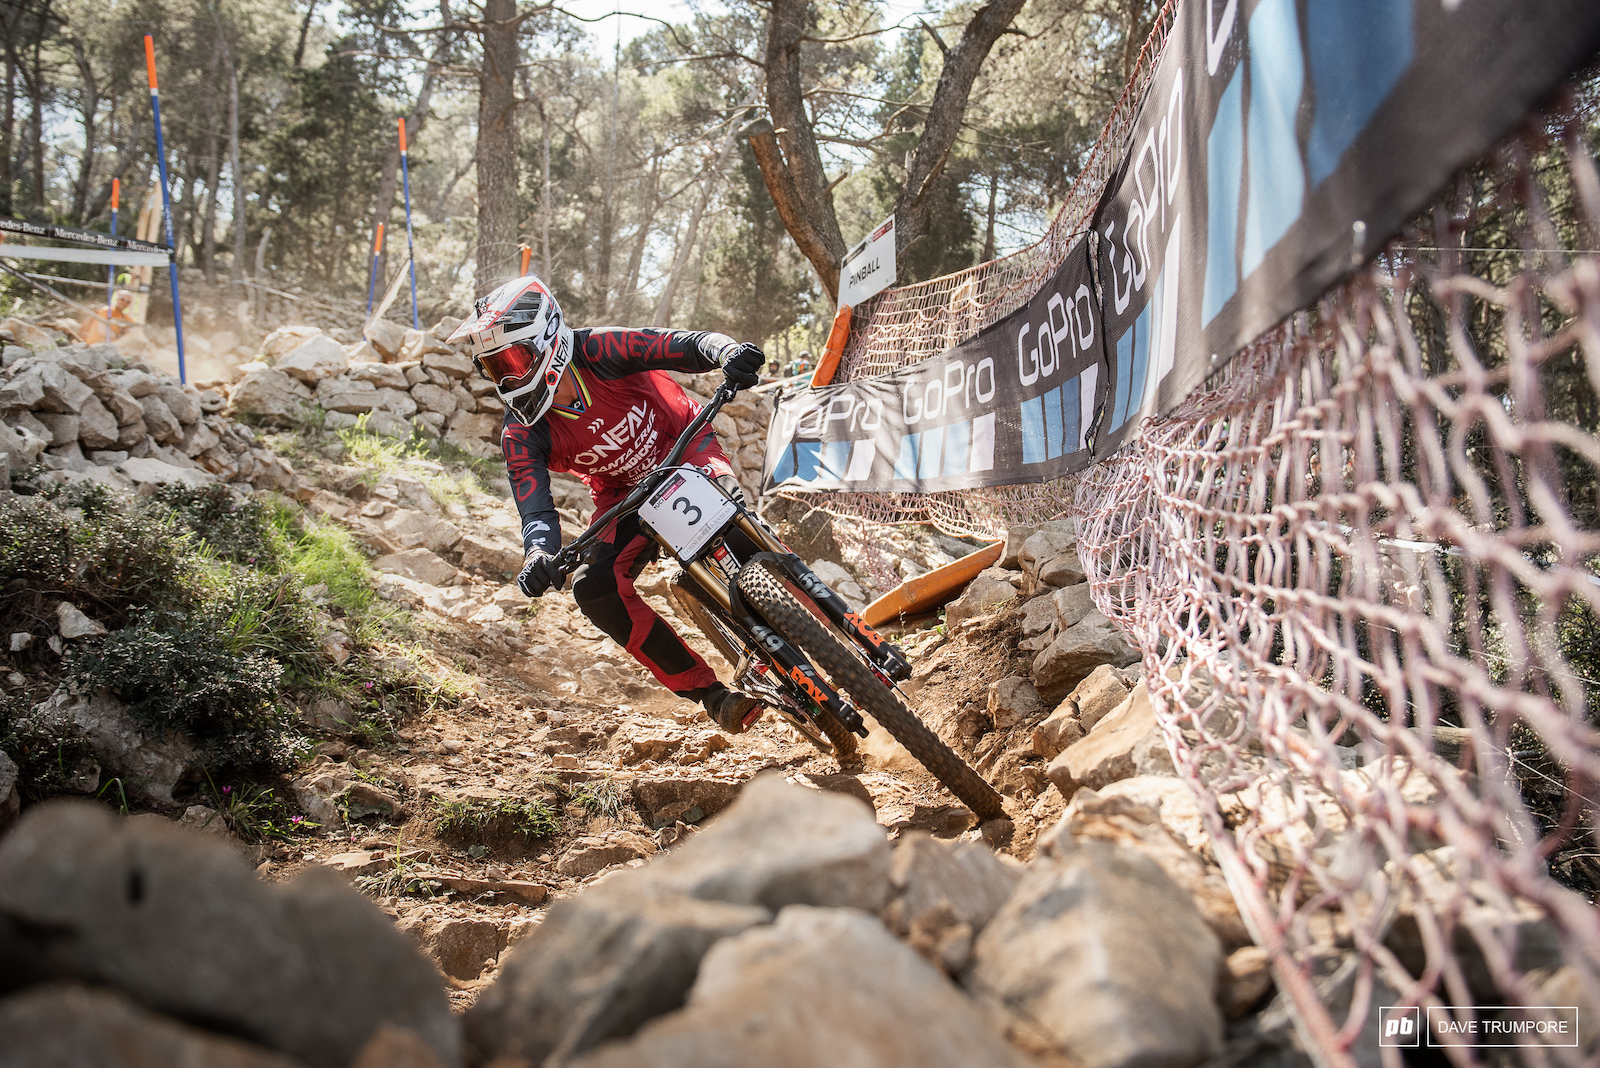 A year ago it was a big deal to see Greg Minnaar on a 29er but now it seems hard the field is on one.